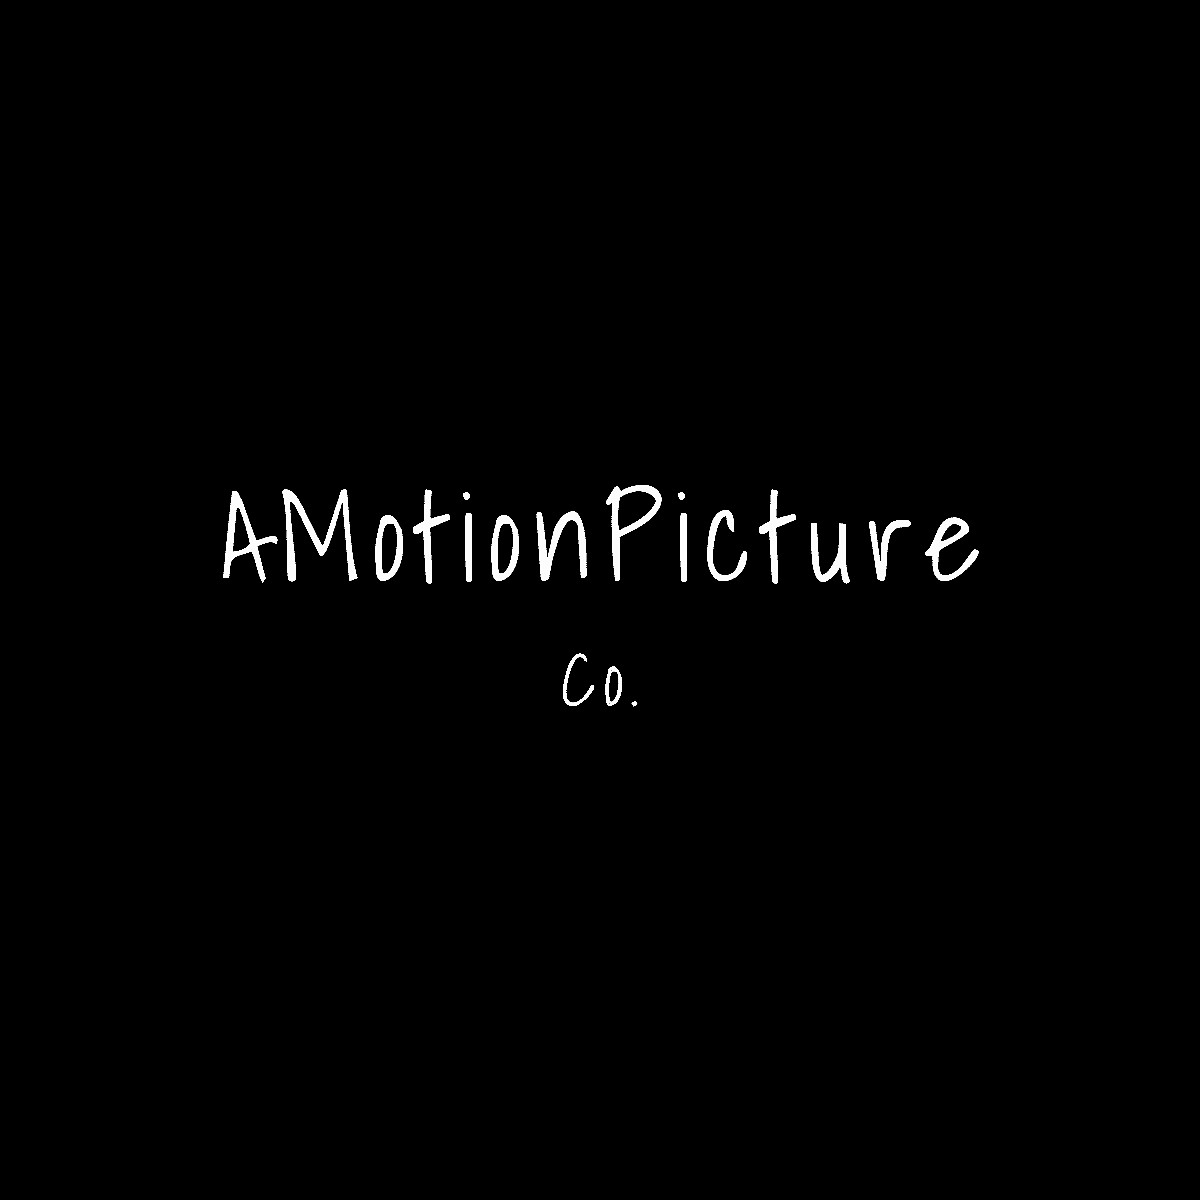 Amotion-Picture Co.